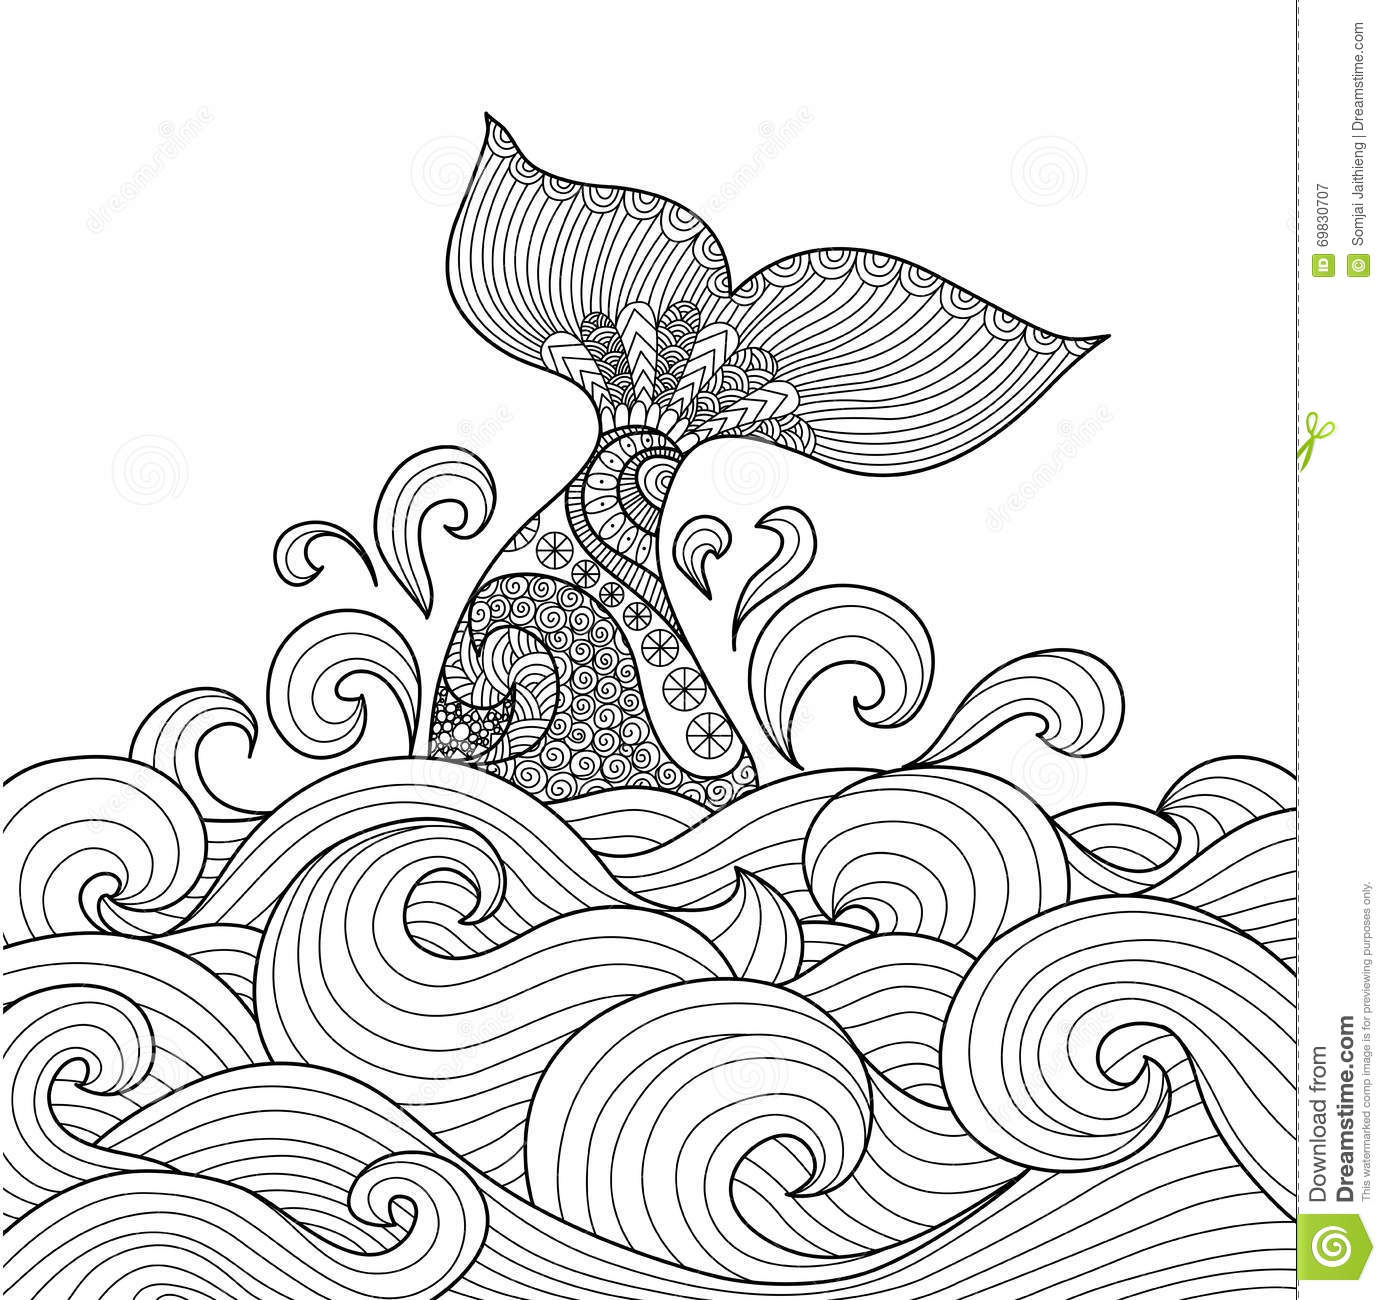 Line Art Card Design : Whale cartoons illustrations vector stock images